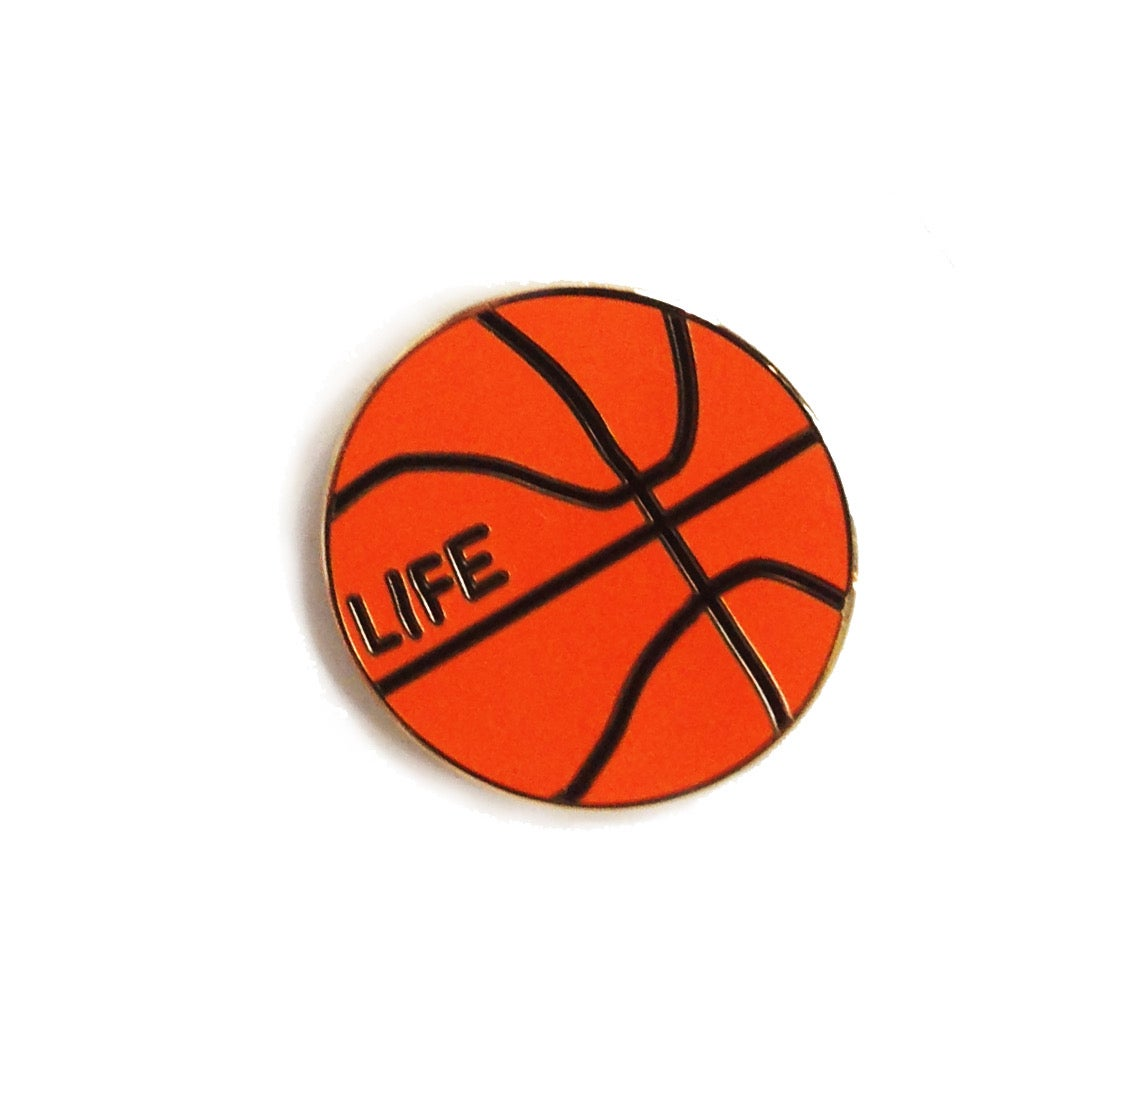 Image of Ball is Life Pin